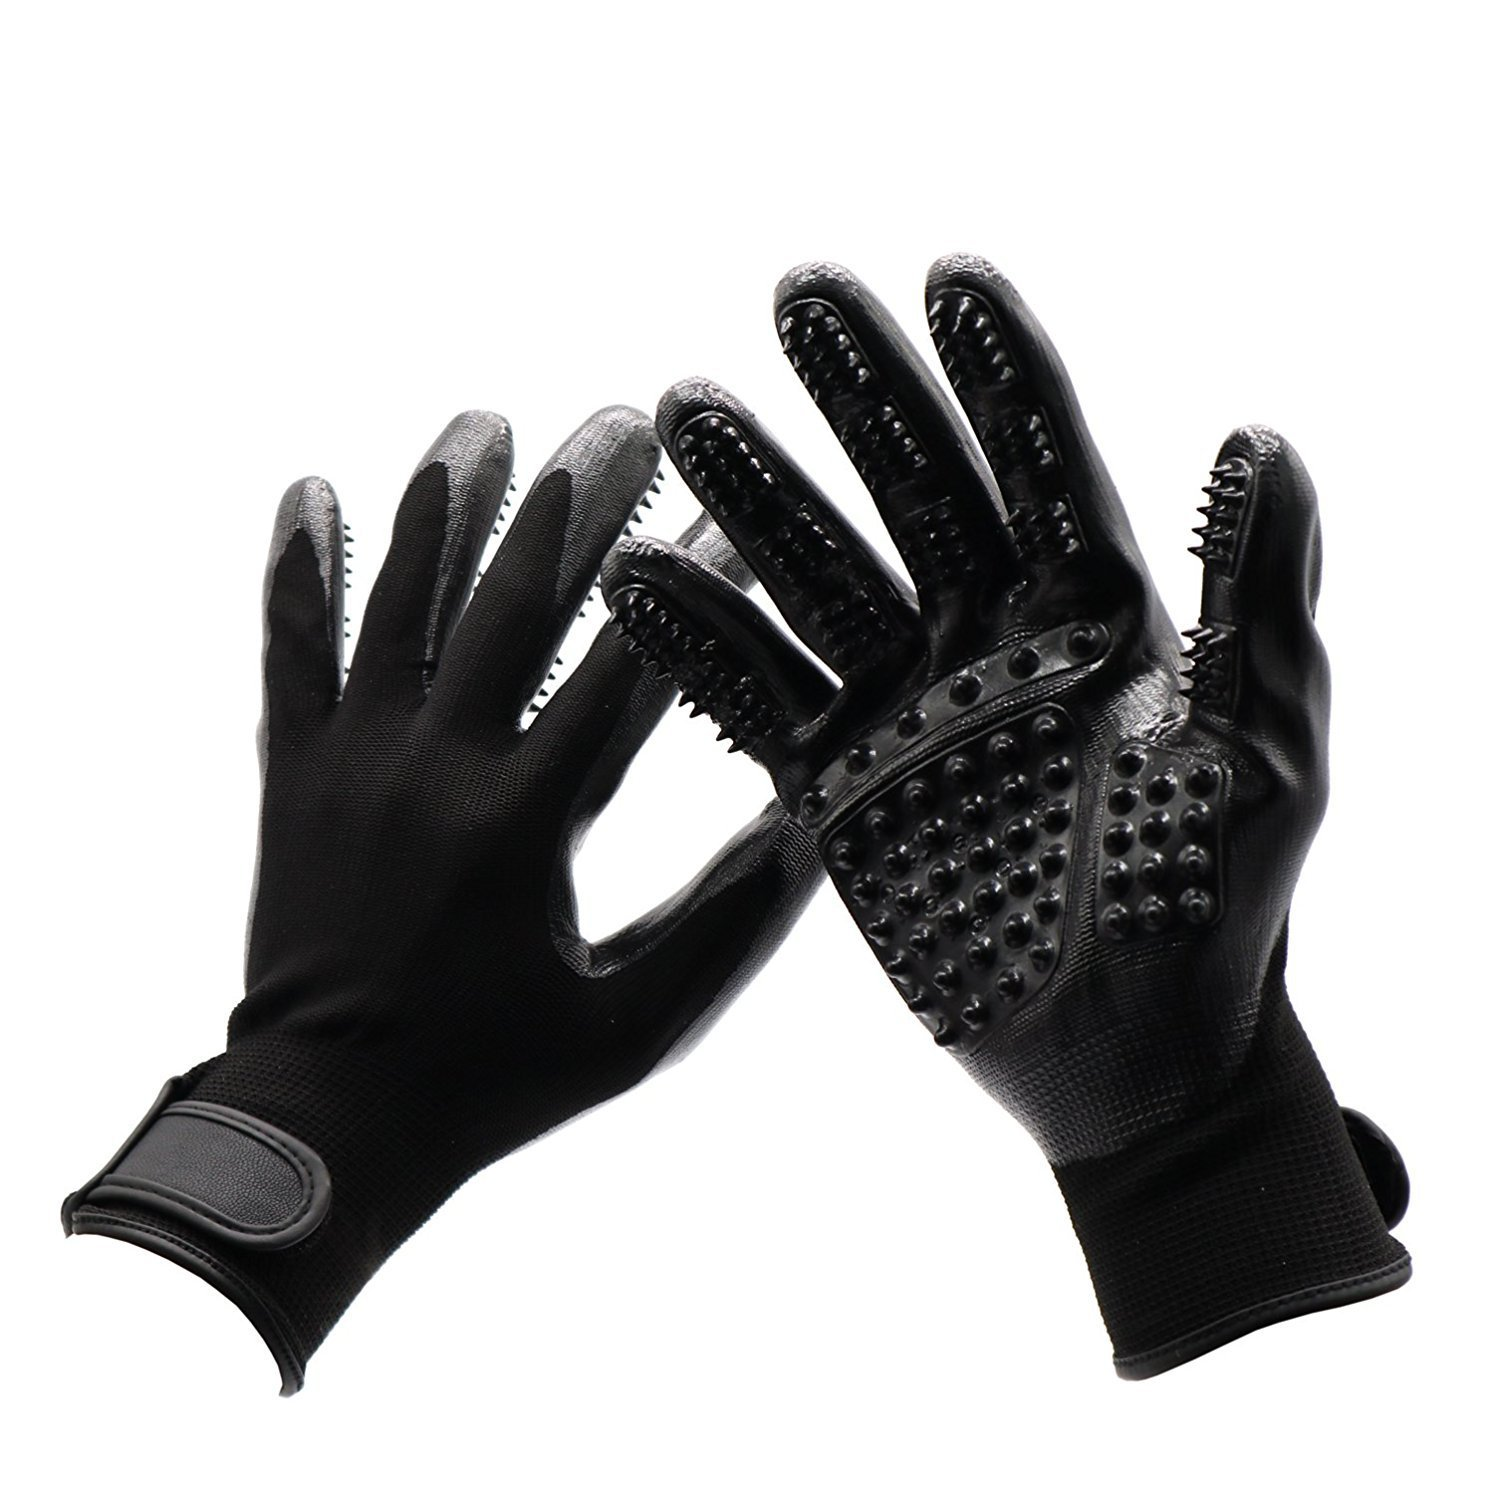 SH NGP Pet Five Finger Gloves Cat and Dog Combing Hair Removal Gloves Pet Bath Massage Beauty Rubber Horse wash Gloves Environmentally Friendly Rubber + Breathable Knitting